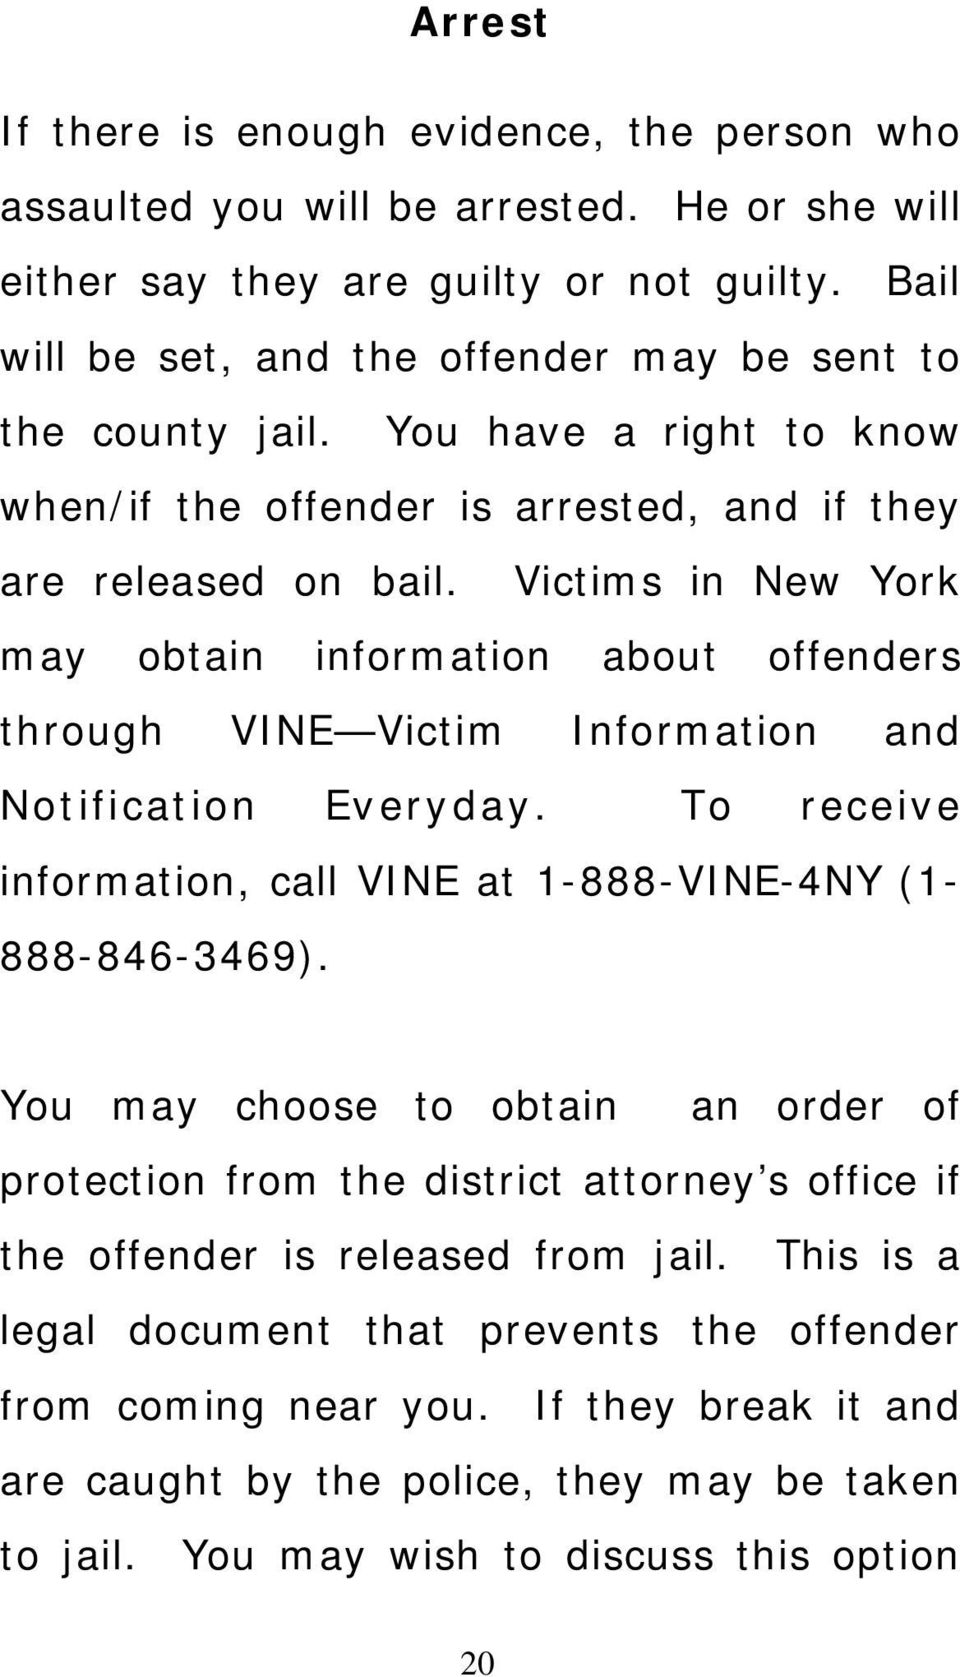 Victims in New York may obtain information about offenders through VINE Victim Information and Notification Everyday. To receive information, call VINE at 1-888-VINE-4NY (1-888-846-3469).